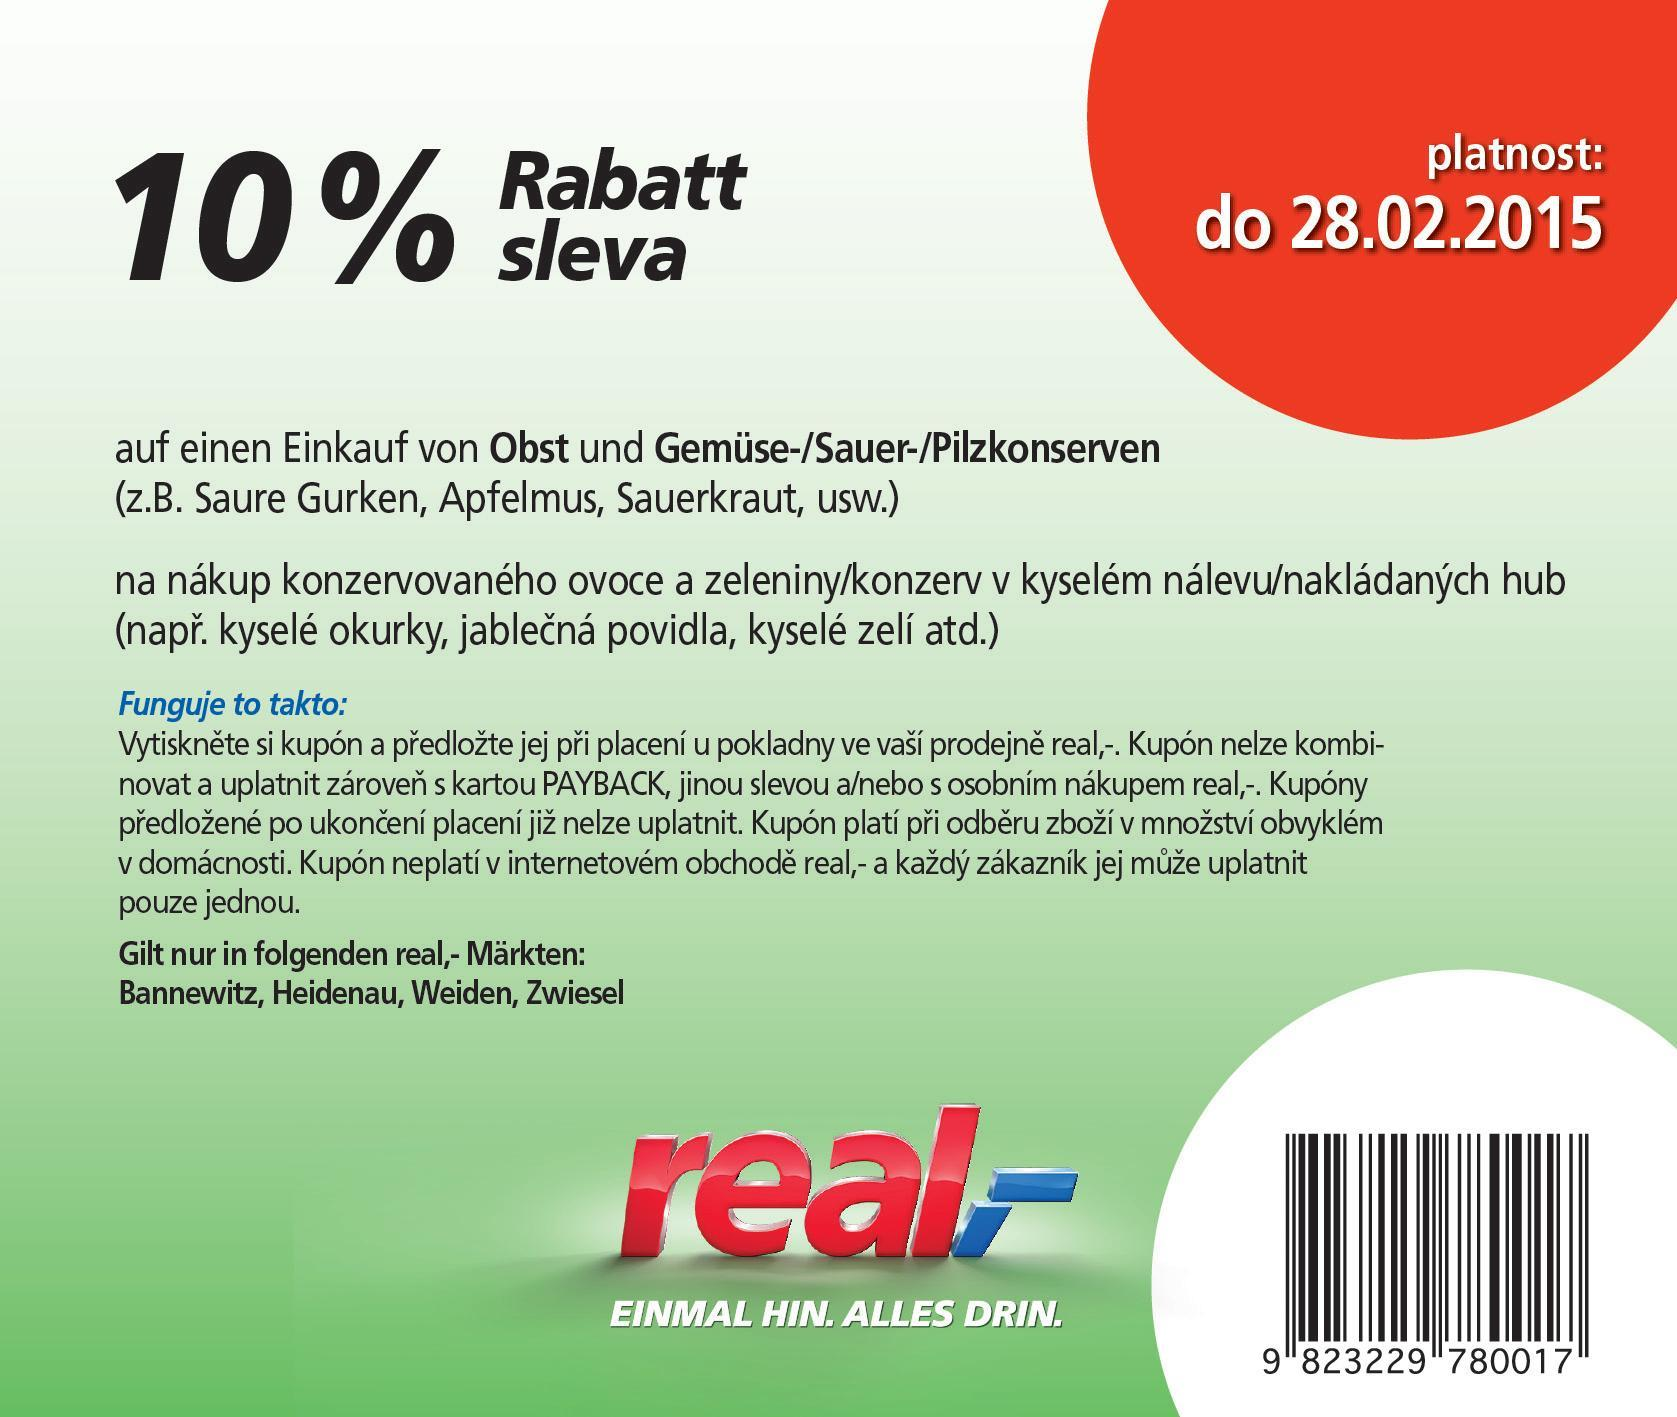 coupons_feb_2015_cz-ppwcyb.jpg